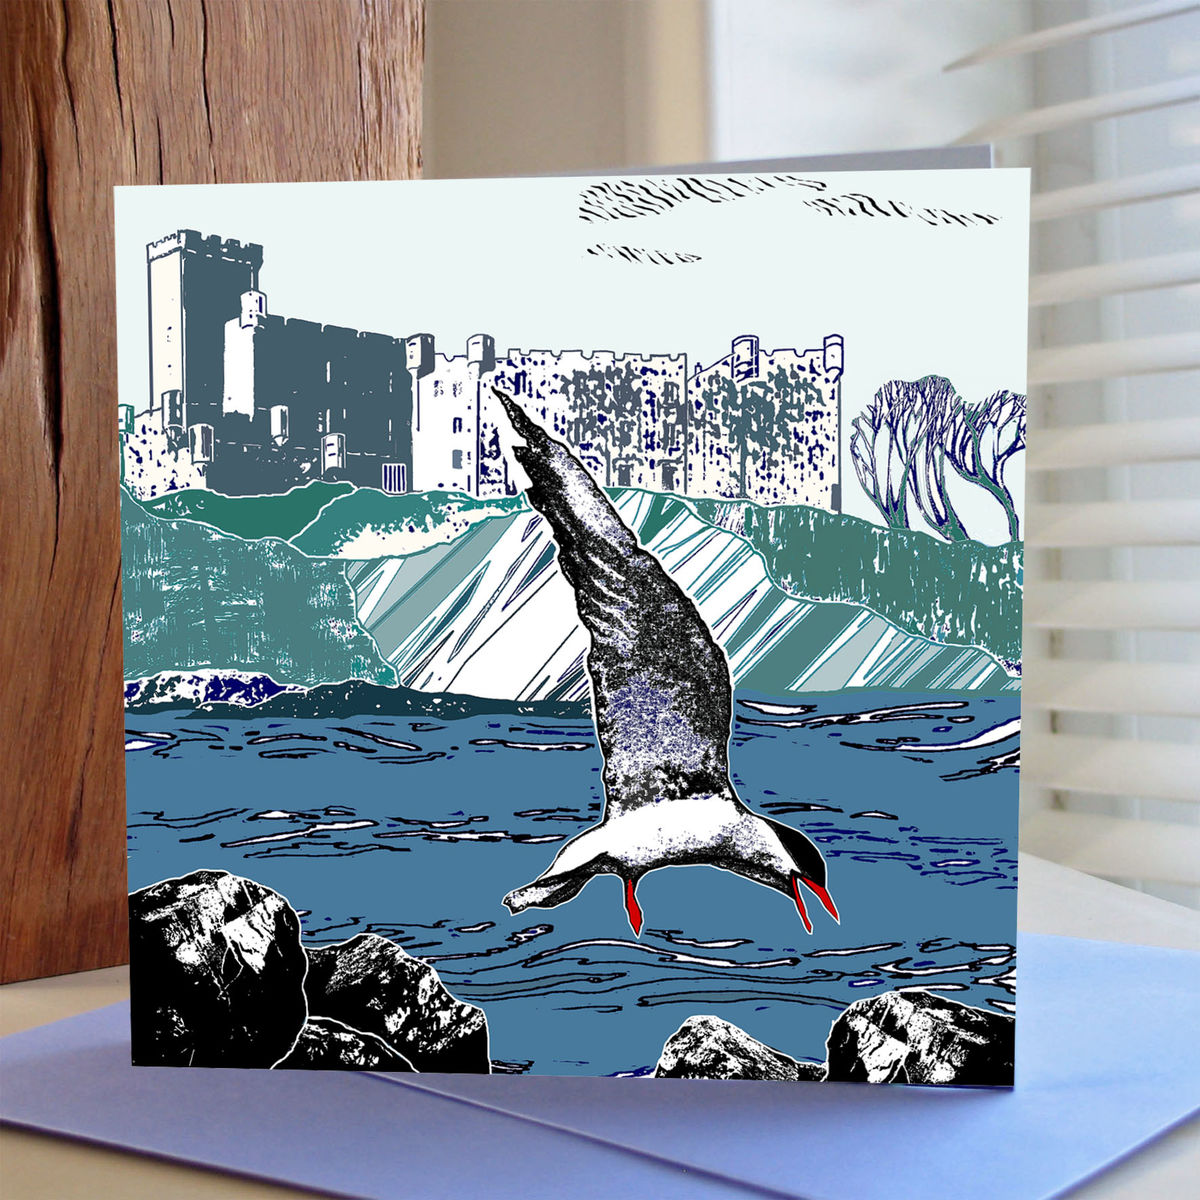 Tern, Tern - pack of 4 greetings cards - product image